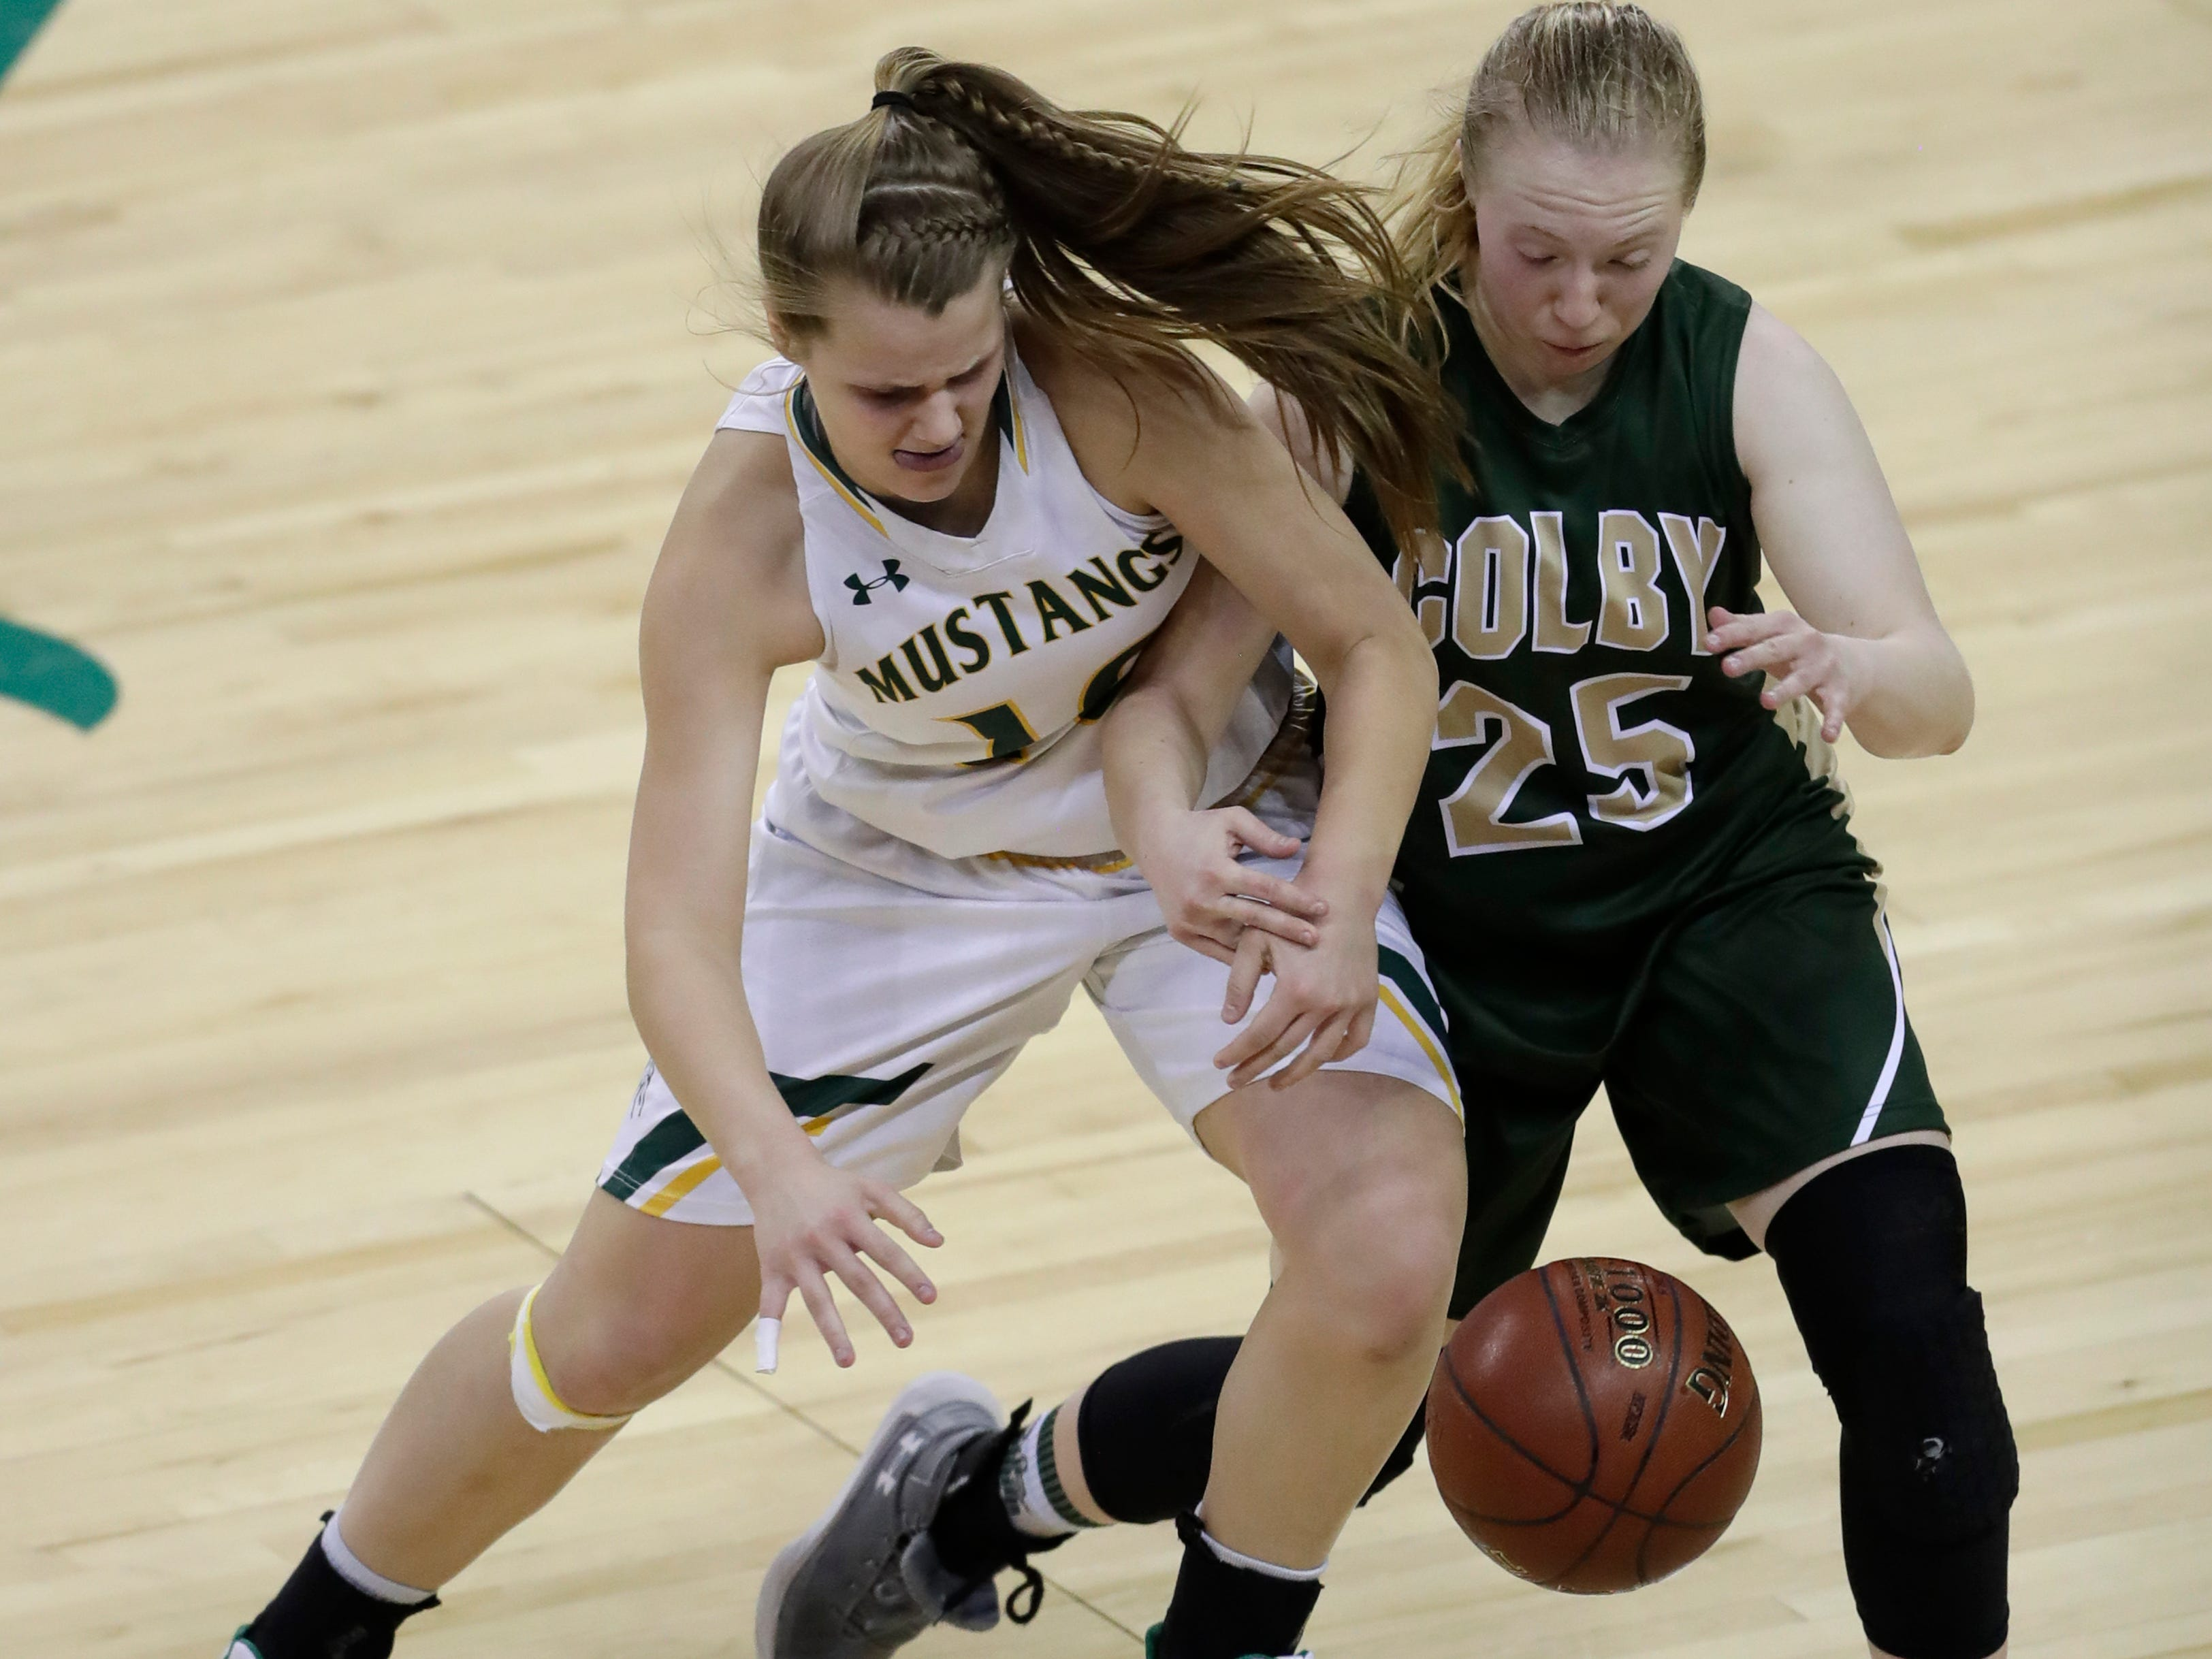 Melrose-Mindoro's Calette Lockington (10) tries to steal the ball from Colby's Ashley Streveler (25) during their Division 4 semifinal game at the WIAA girls state basketball tournament Thursday, March 7, 2019, at the Resch Center in Ashwaubenon, Wis.